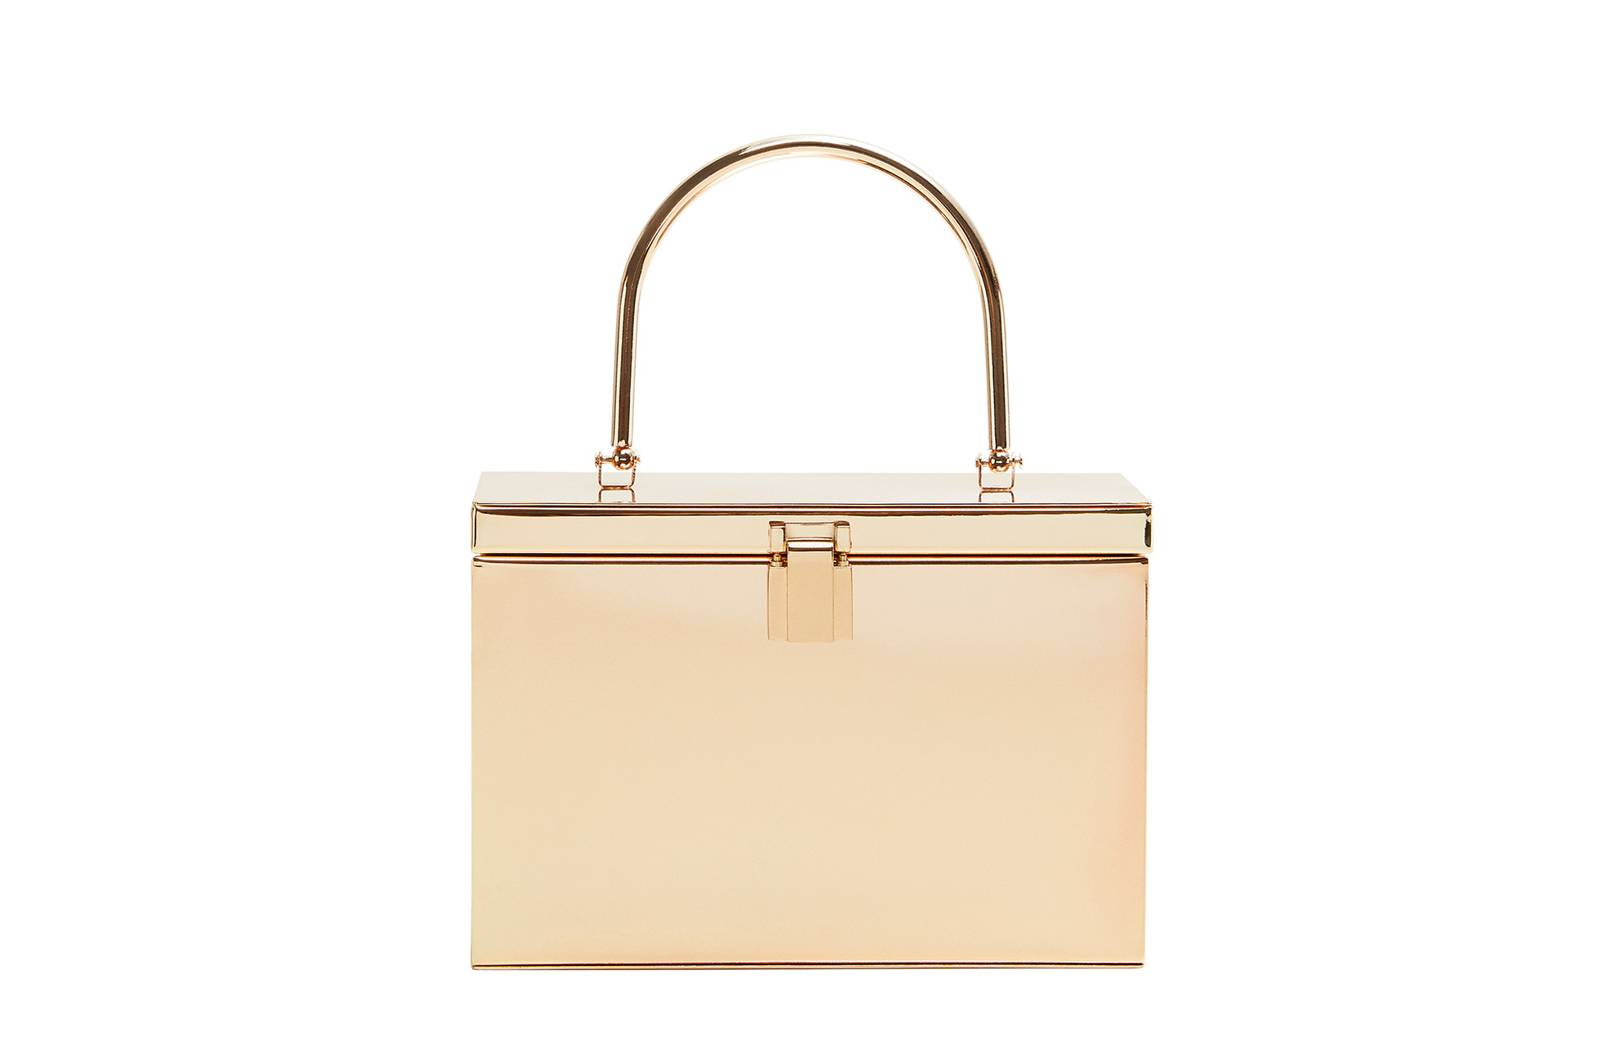 83b3863c29d The 12 Best Gold Bags To Buy Now | British Vogue